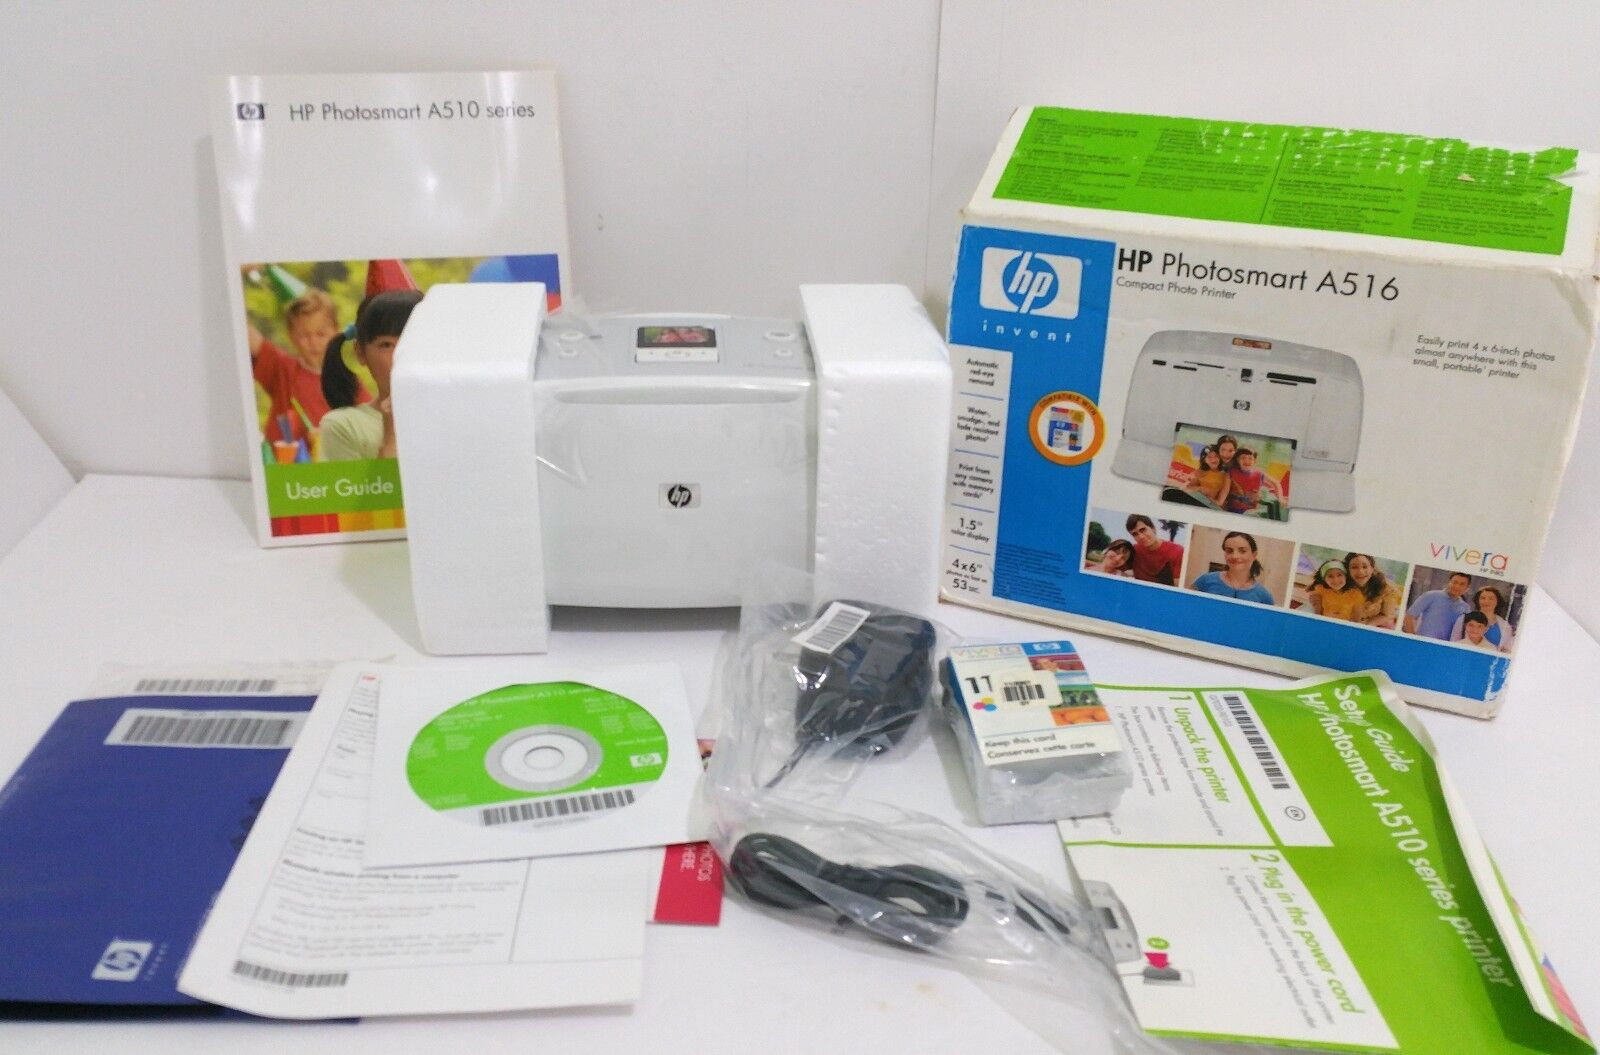 Genuine HP Photosmart A516 Compact Photo Printer